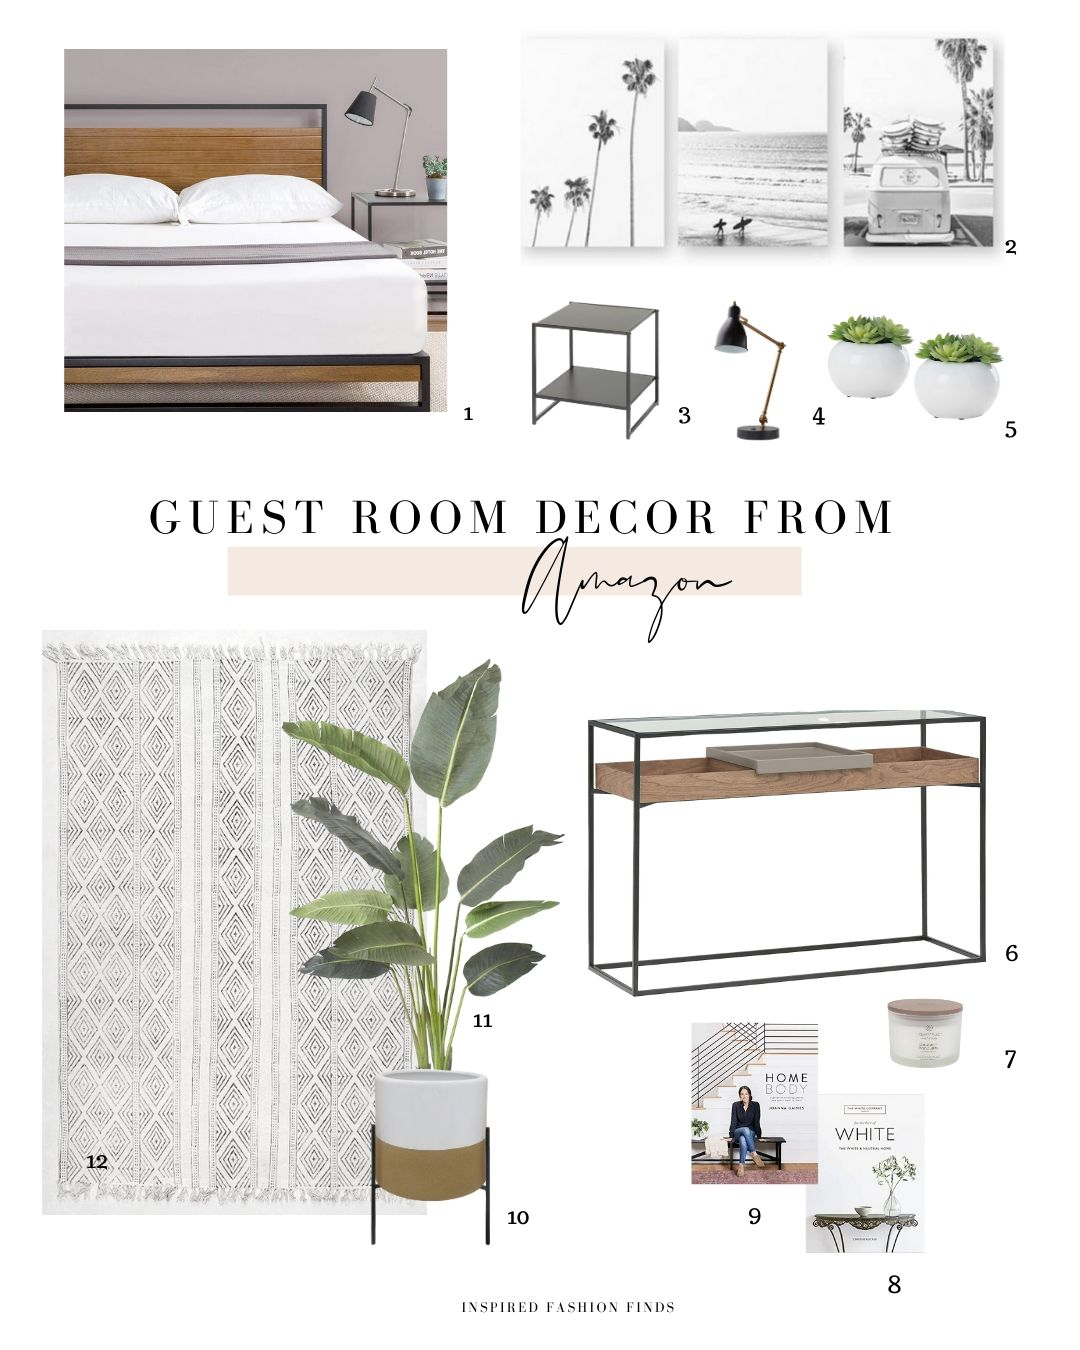 HD-Guest Room Mood Board with numbers